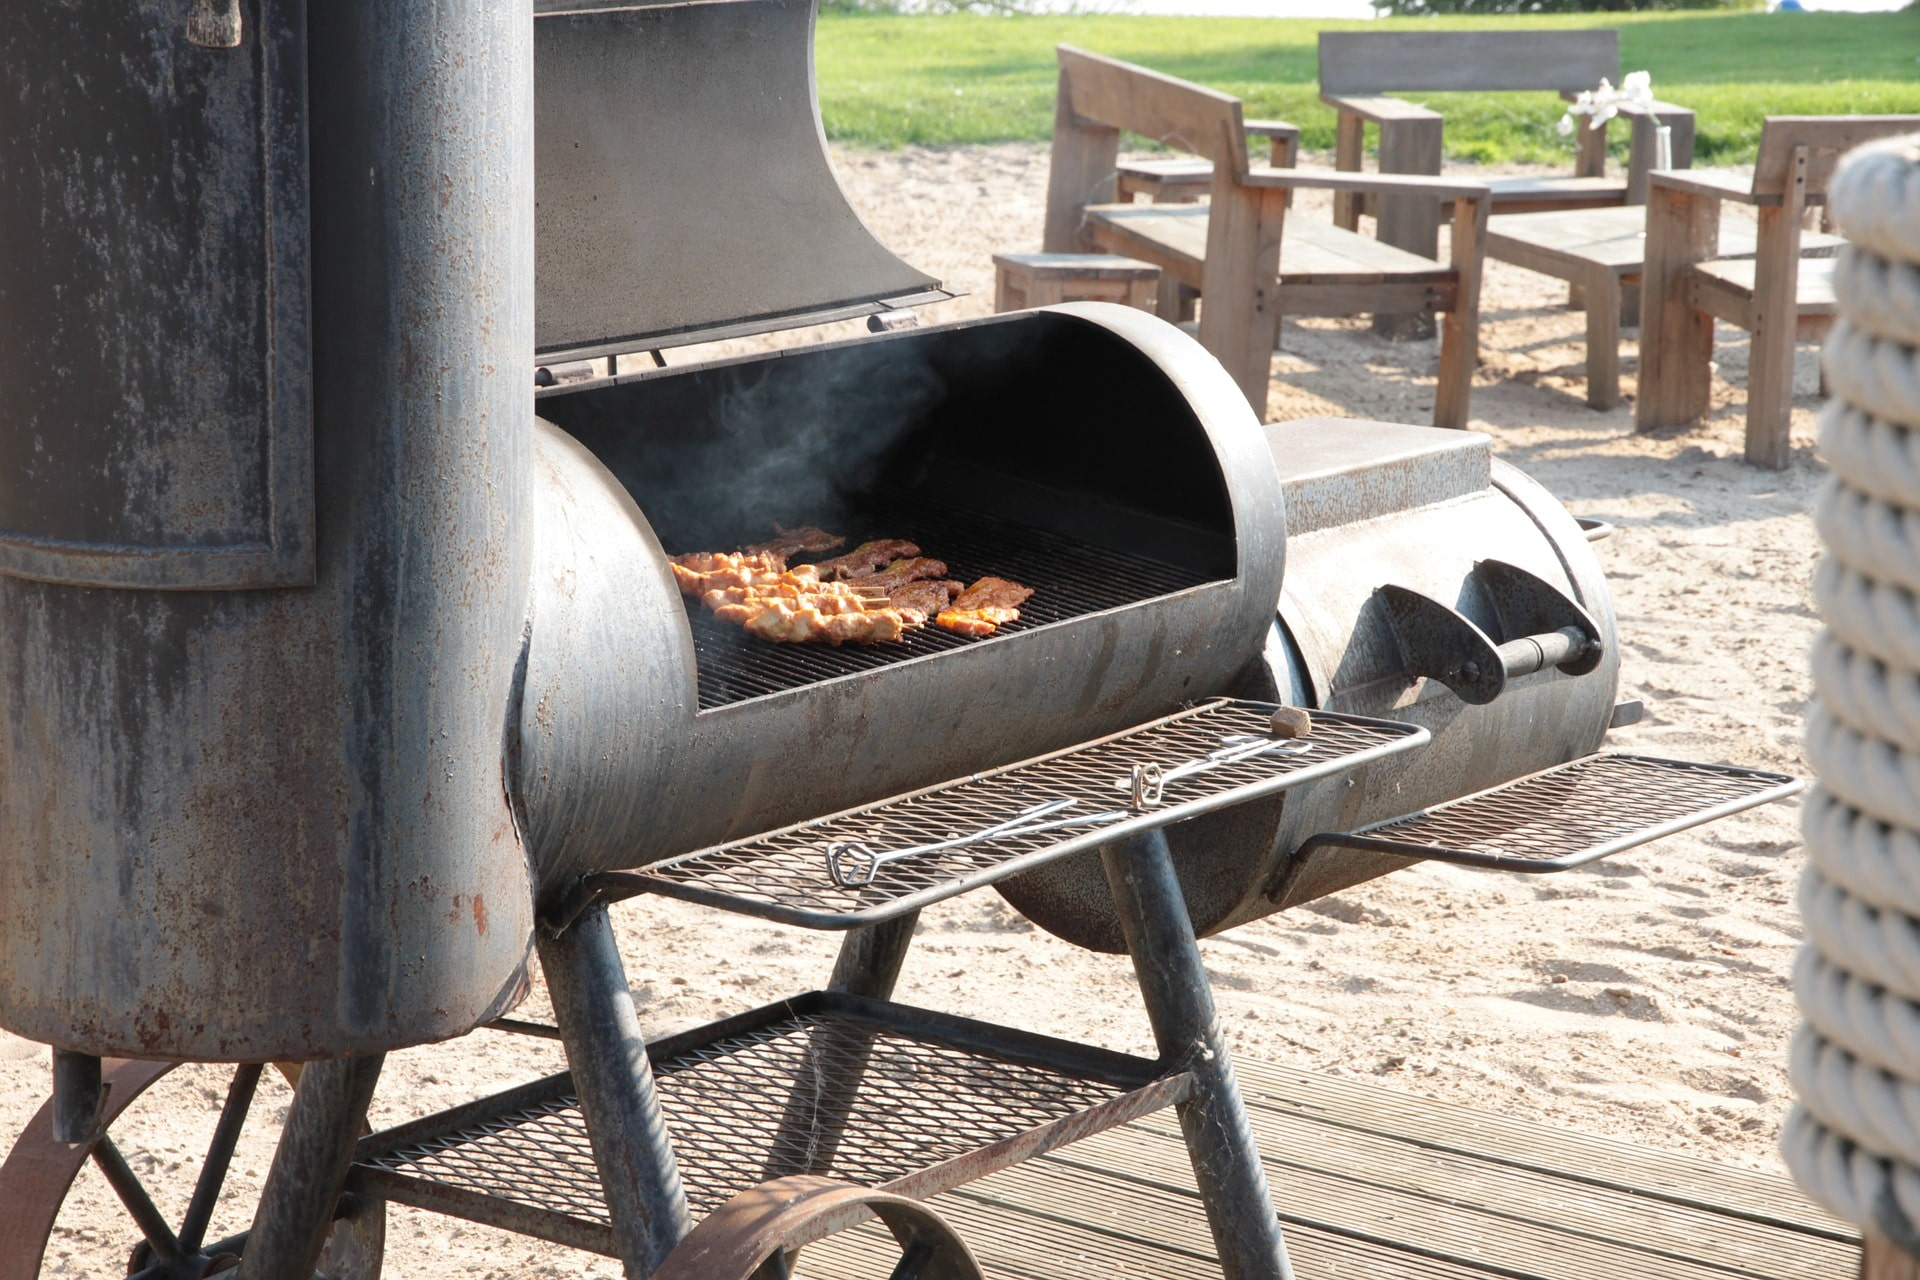 5 The Char Griller Trio Gas Charcoal Grill And Smoker